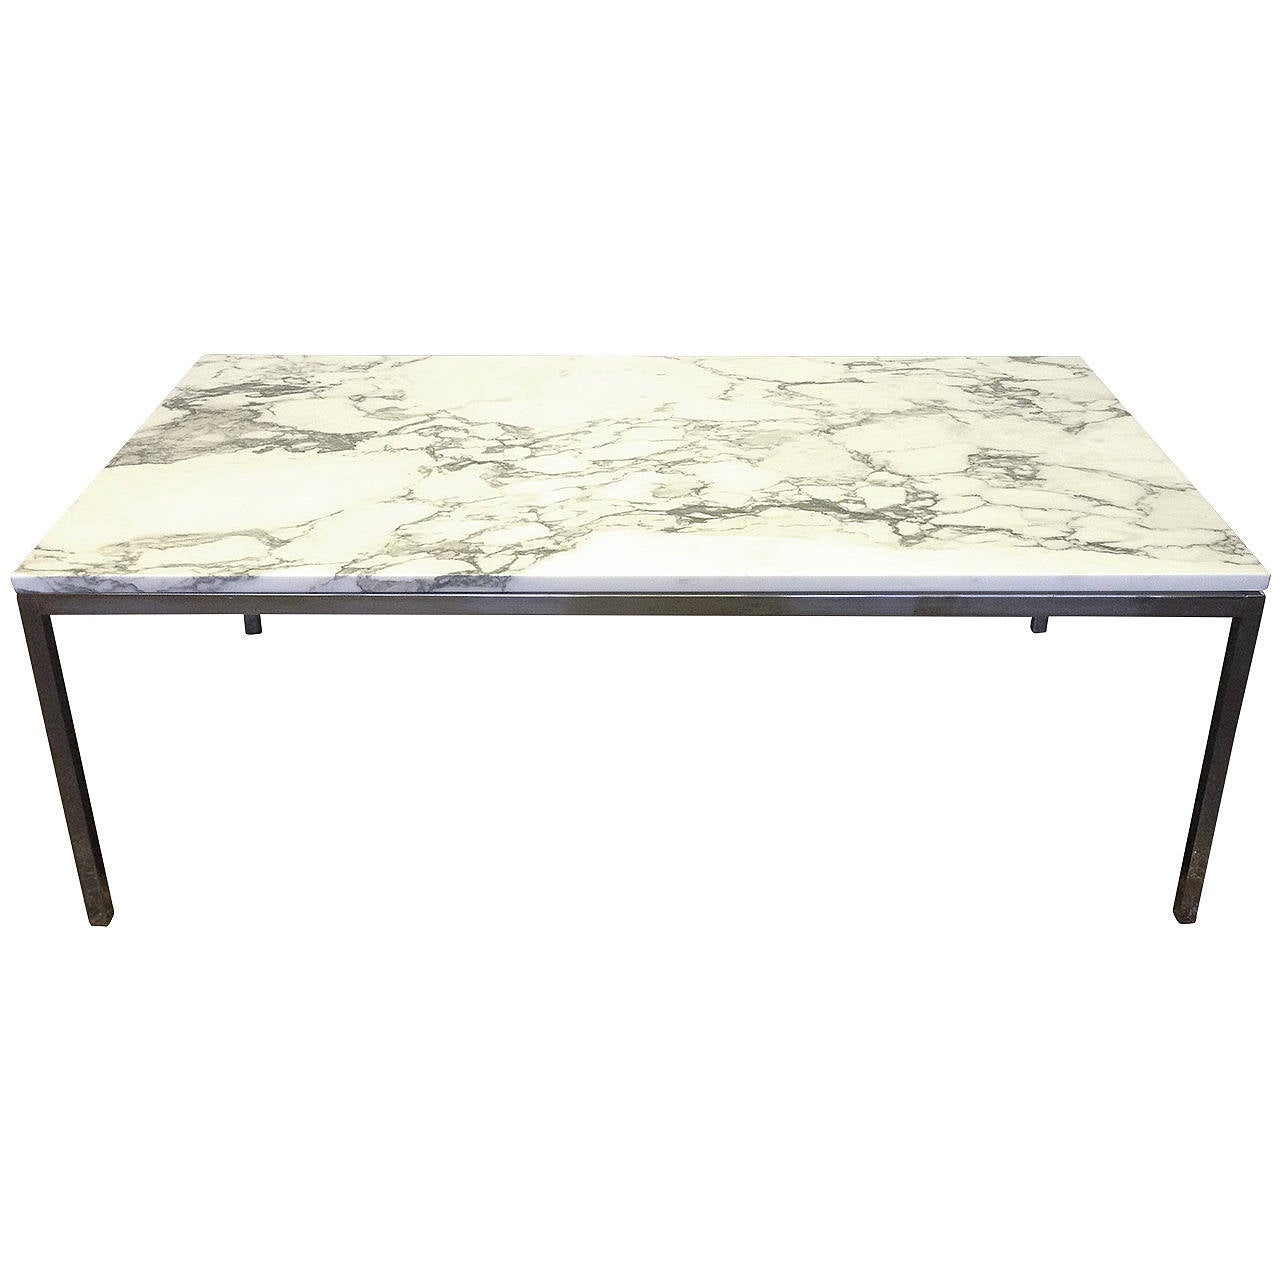 White Marble Coffee Tables Modernist White Marble Coffee Table At 1stdibs White Marble Coffee